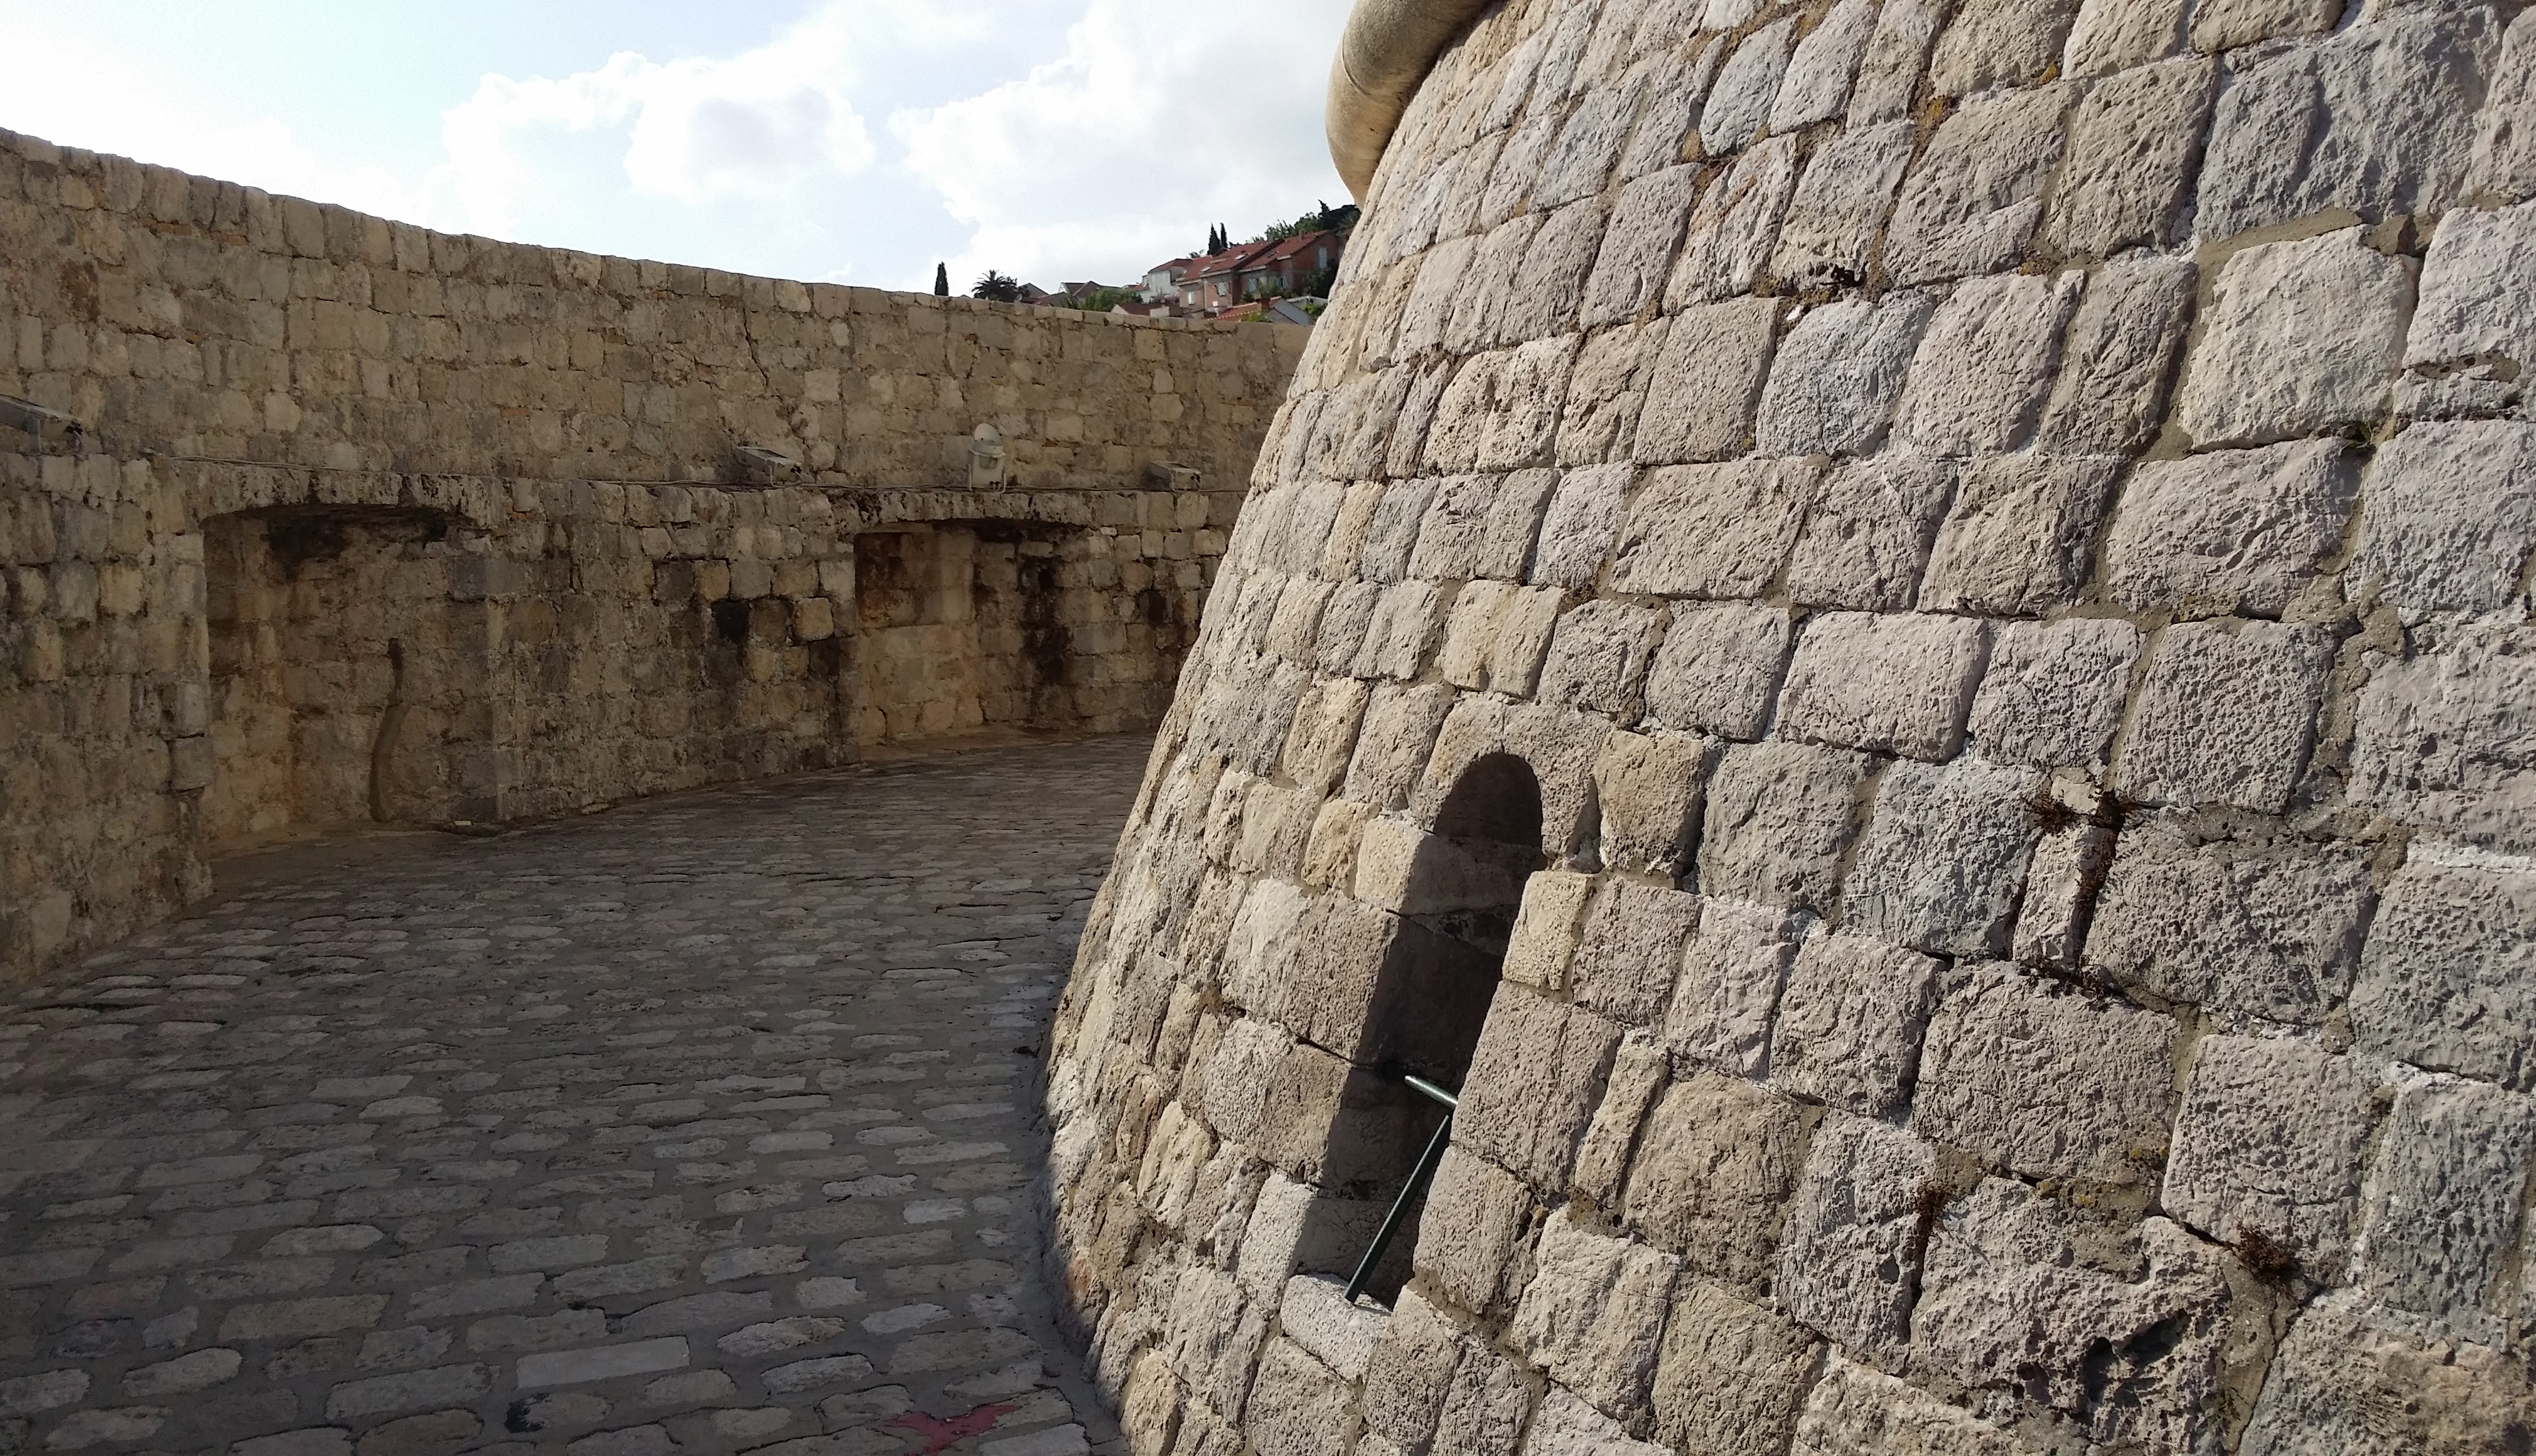 File:Game of Thrones - Dubrovnik Minceta Tower.jpg ...